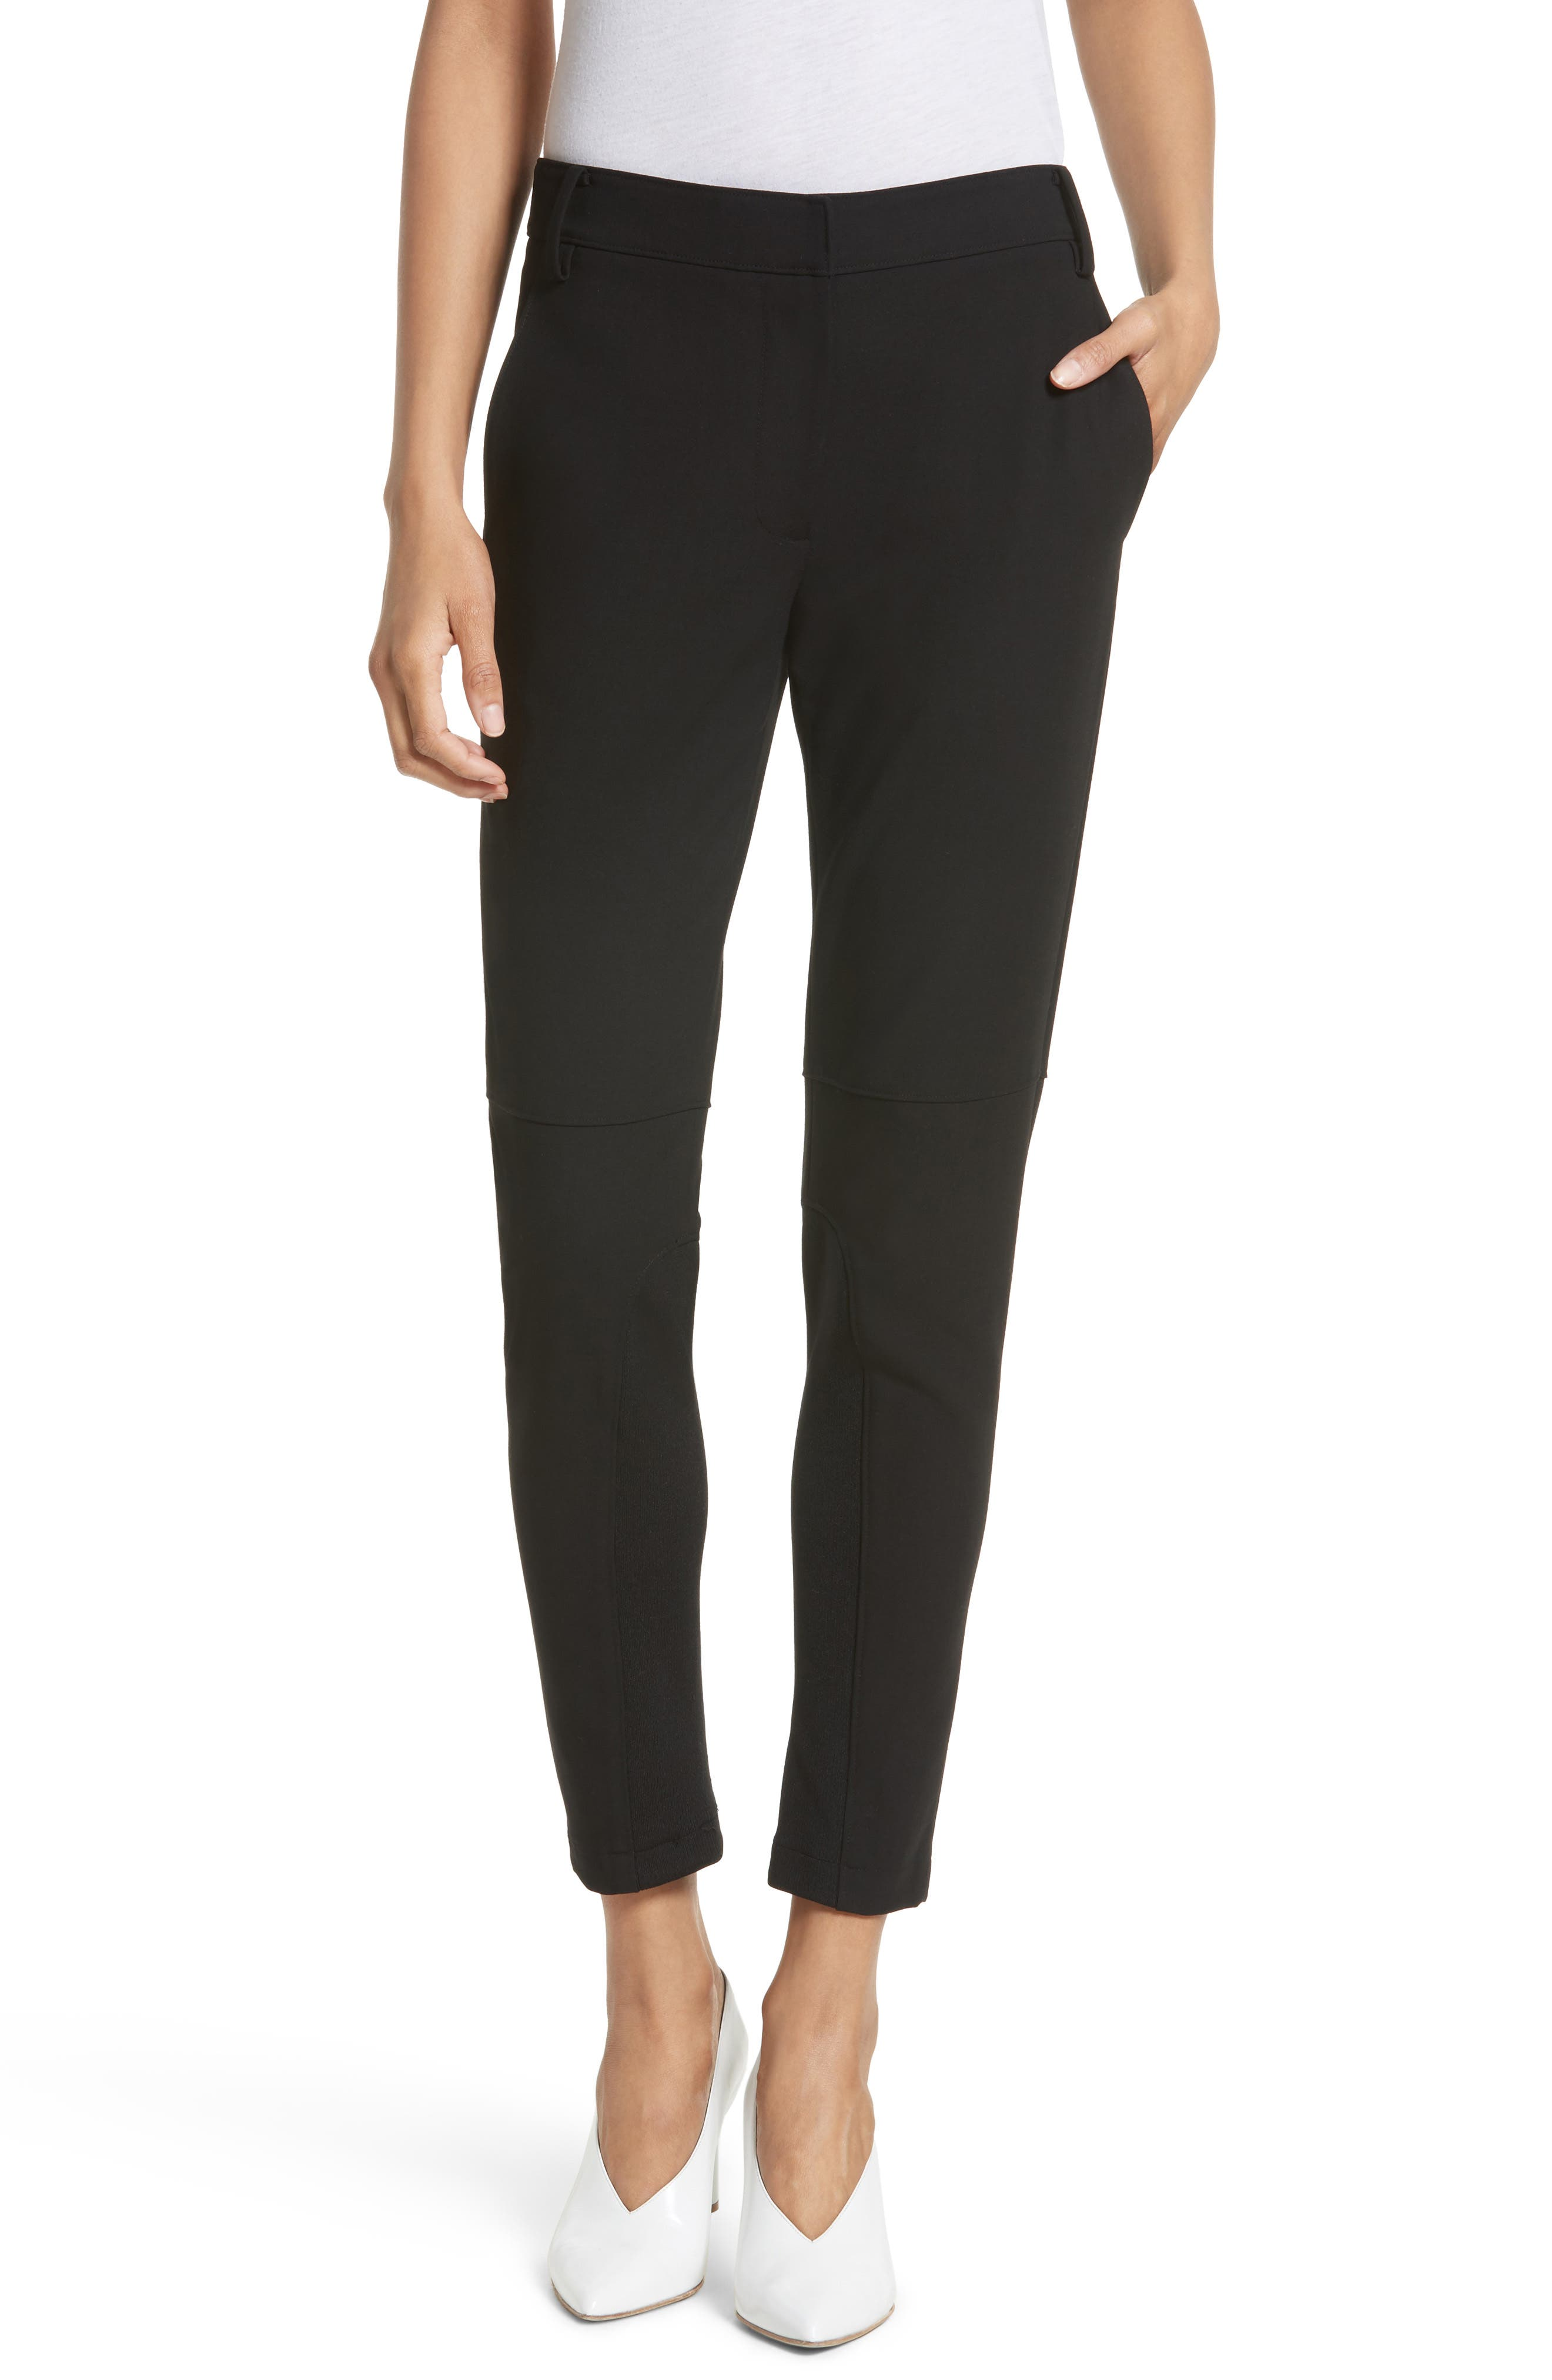 Alternate Image 1 Selected - Tibi Anson Stretch Insert Ankle Pants